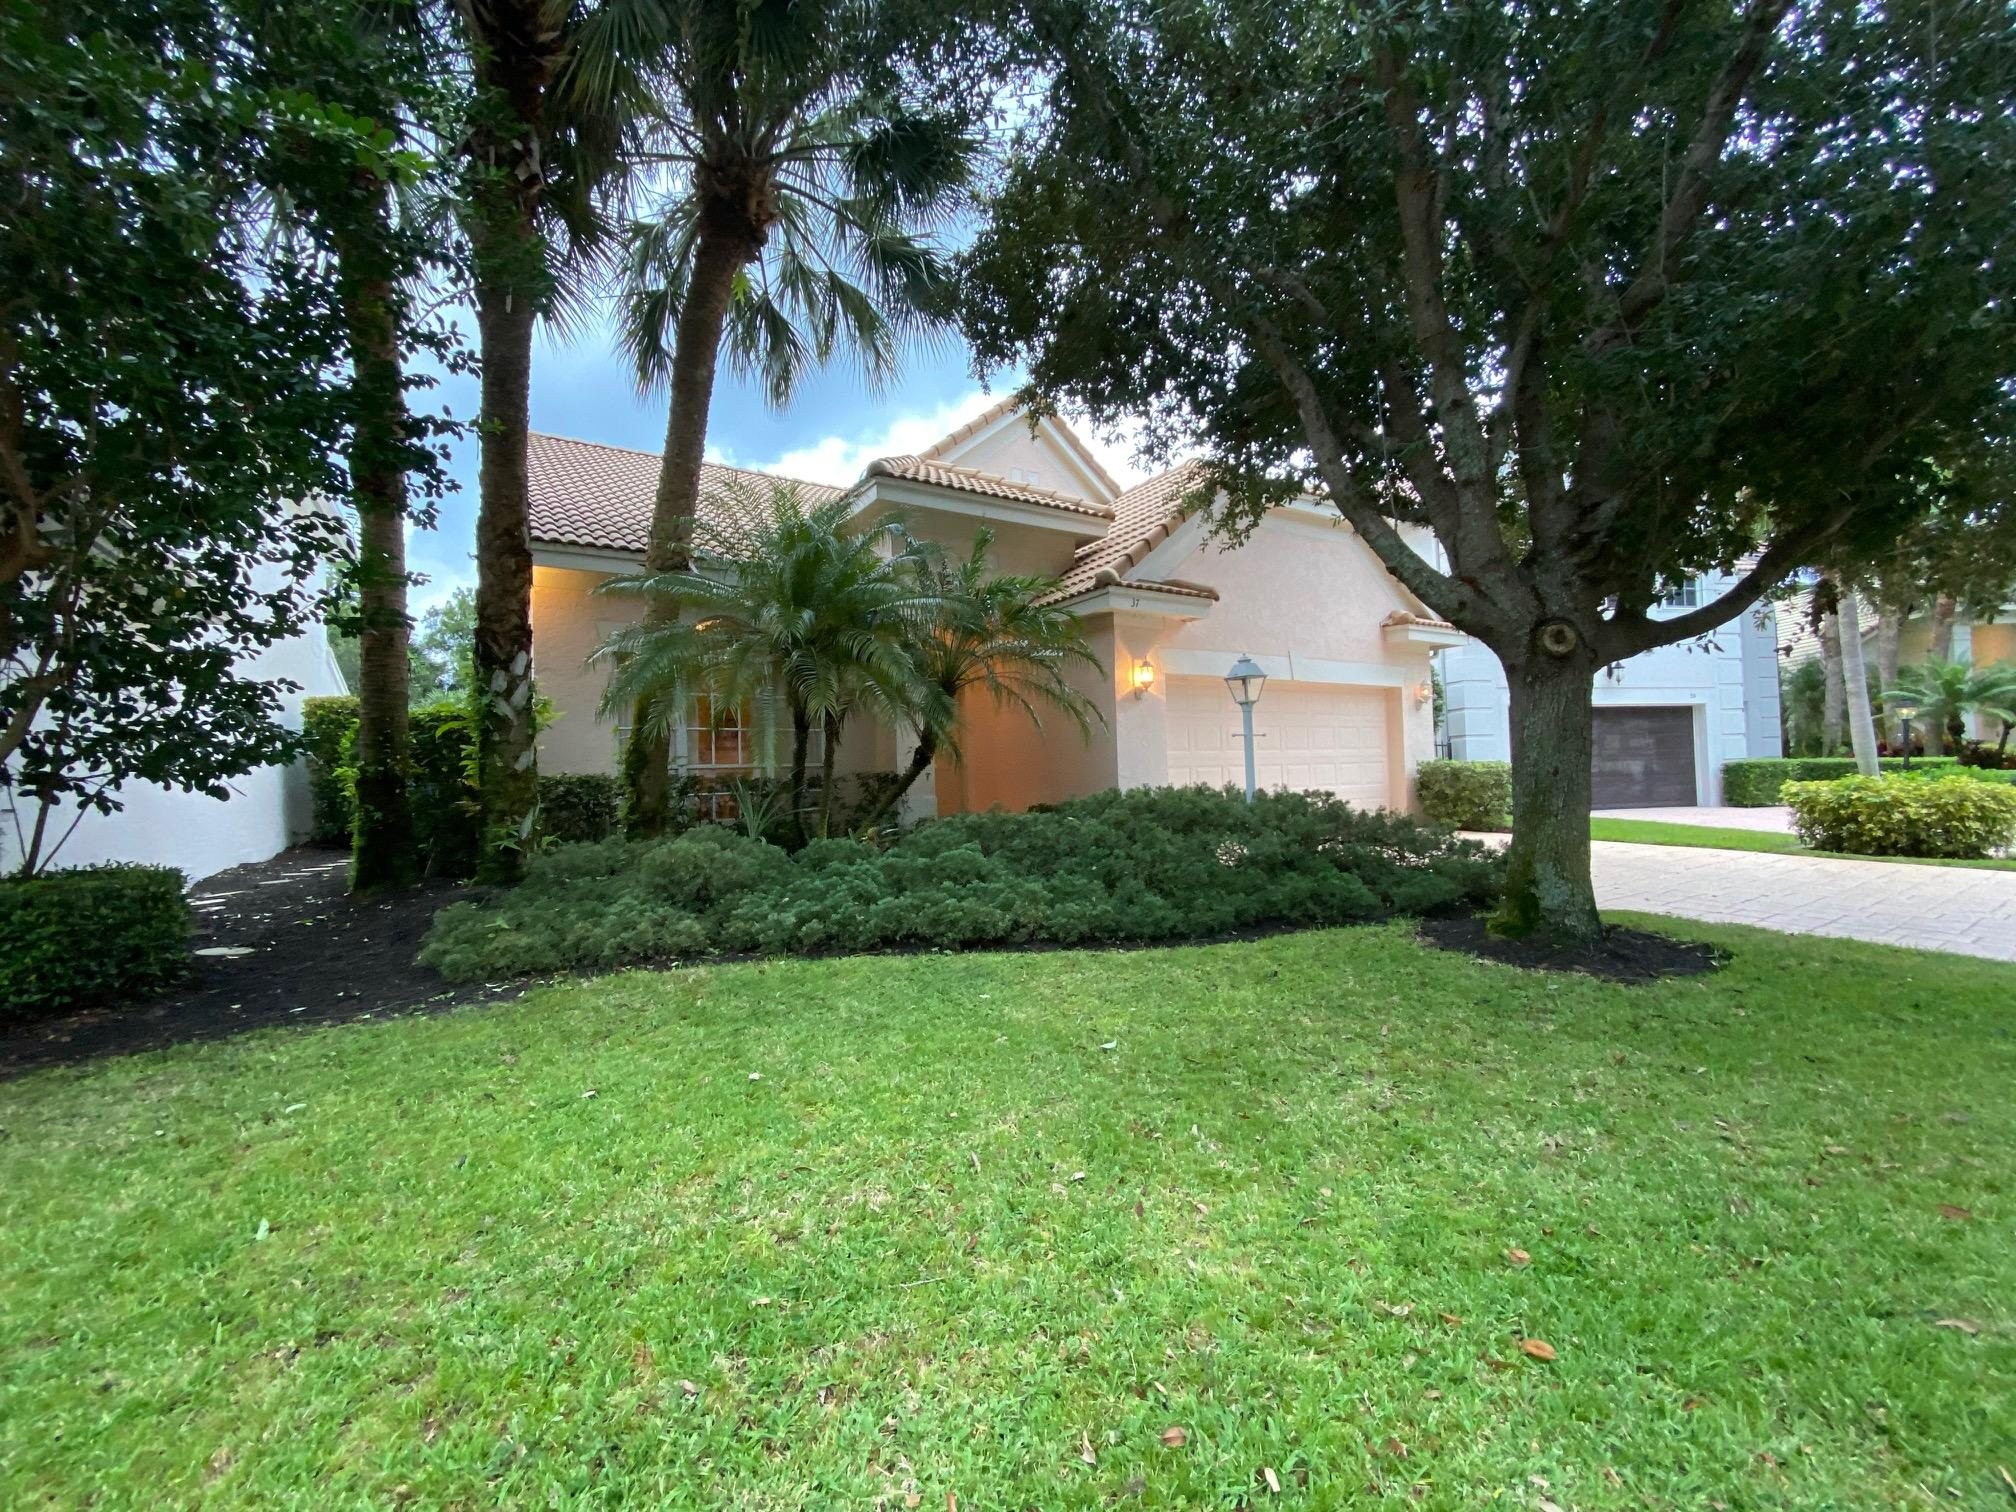 Home for sale in The Sanctuary Palm Beach Gardens Florida